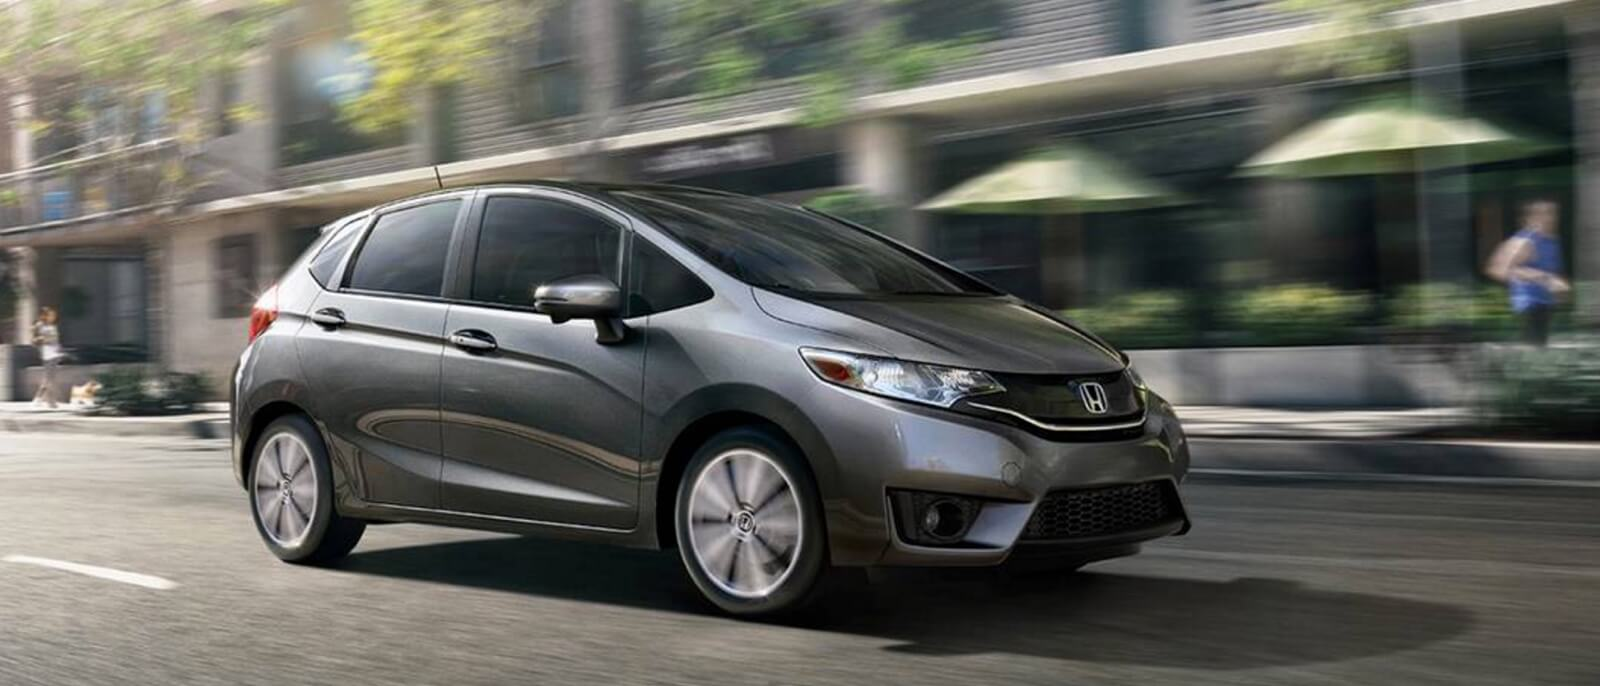 2016 Honda Fit front view